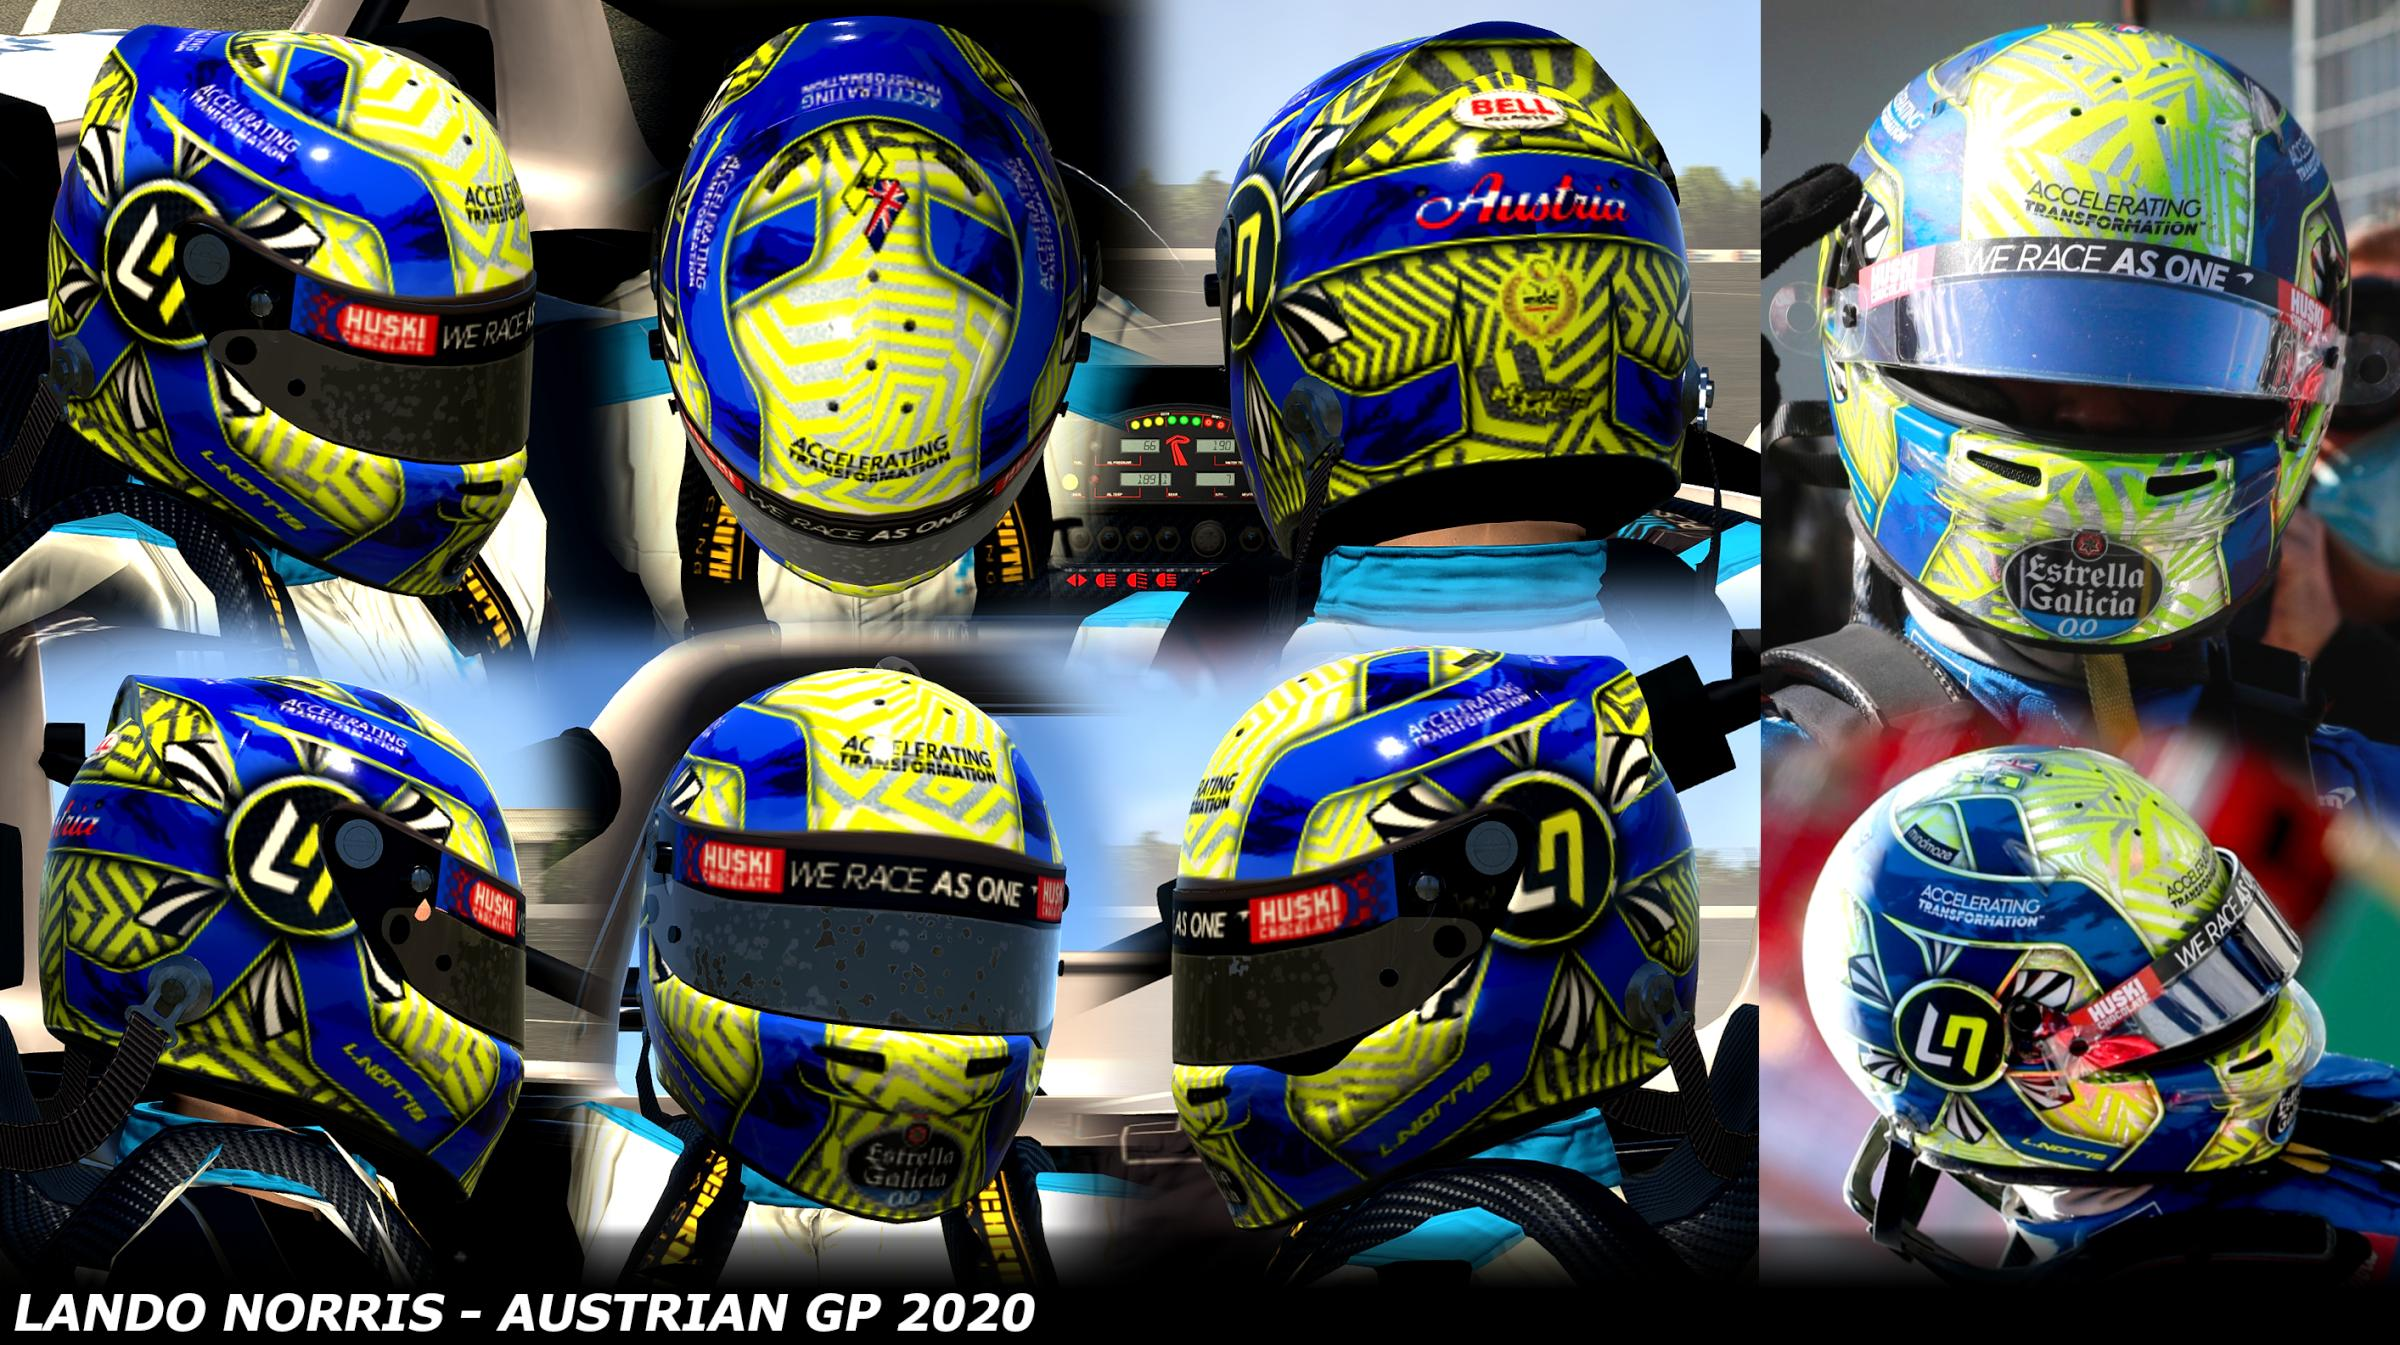 Preview of Lando Norris - Austrian GP 2020 by George Simmons